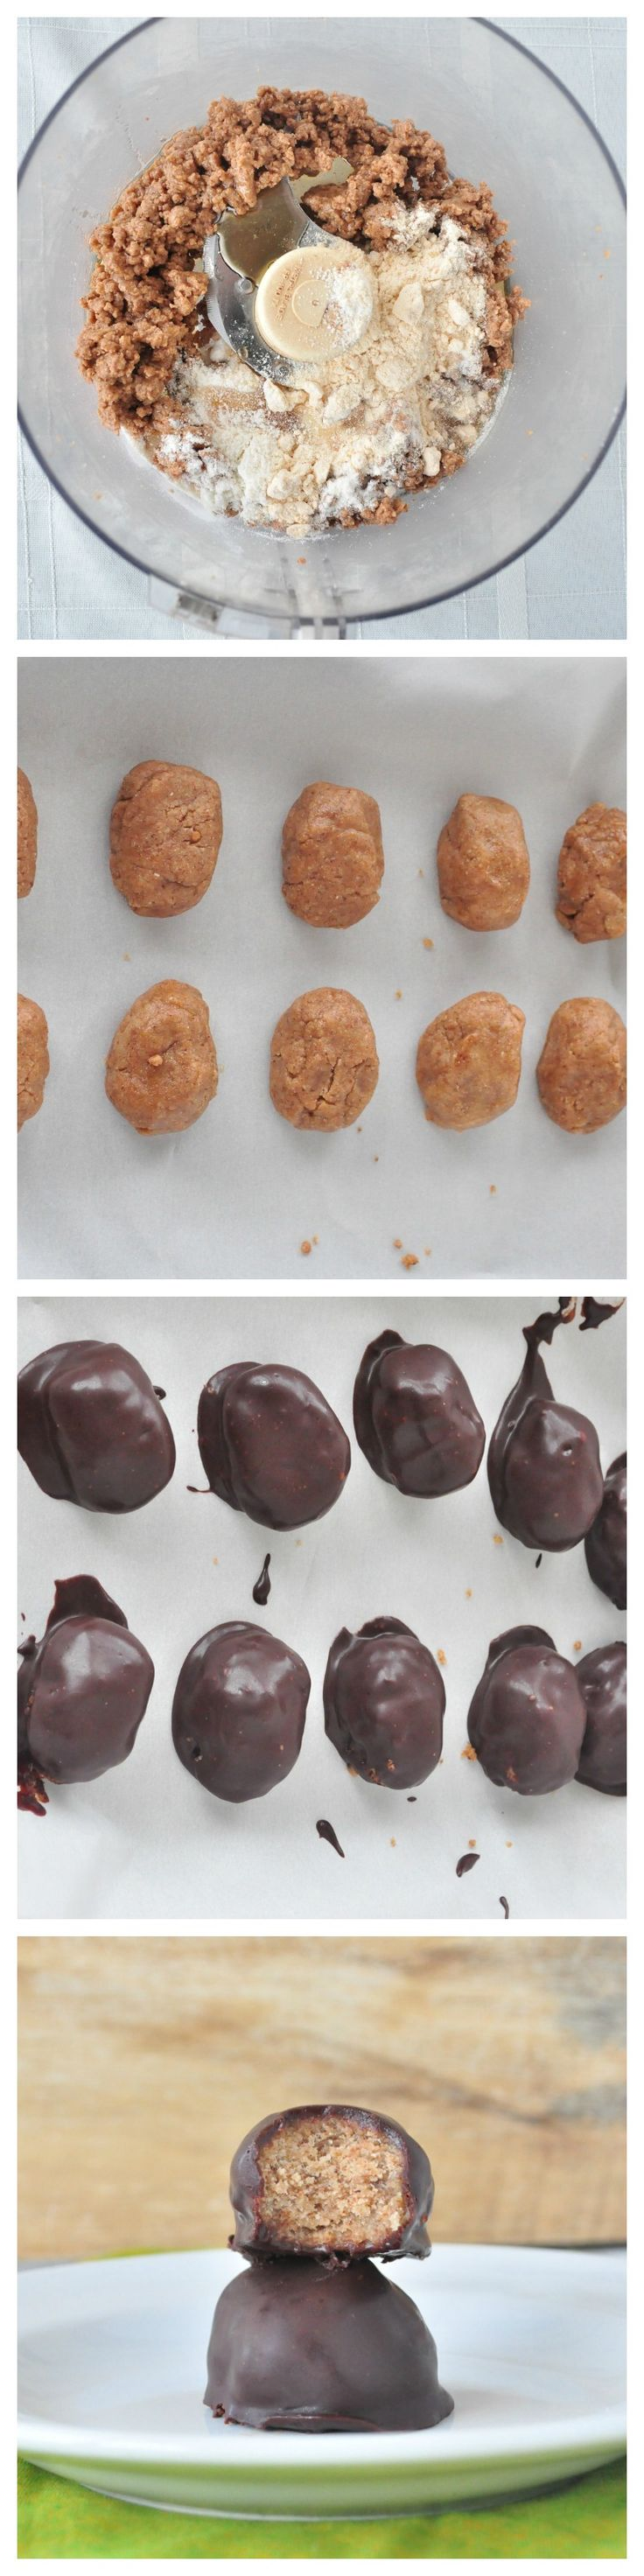 "Copycat Reese's ""Peanut Butter"" Eggs. All you need is 5 ingredients to make a healthier, homemade version of the Reese's egg. Gluten free"